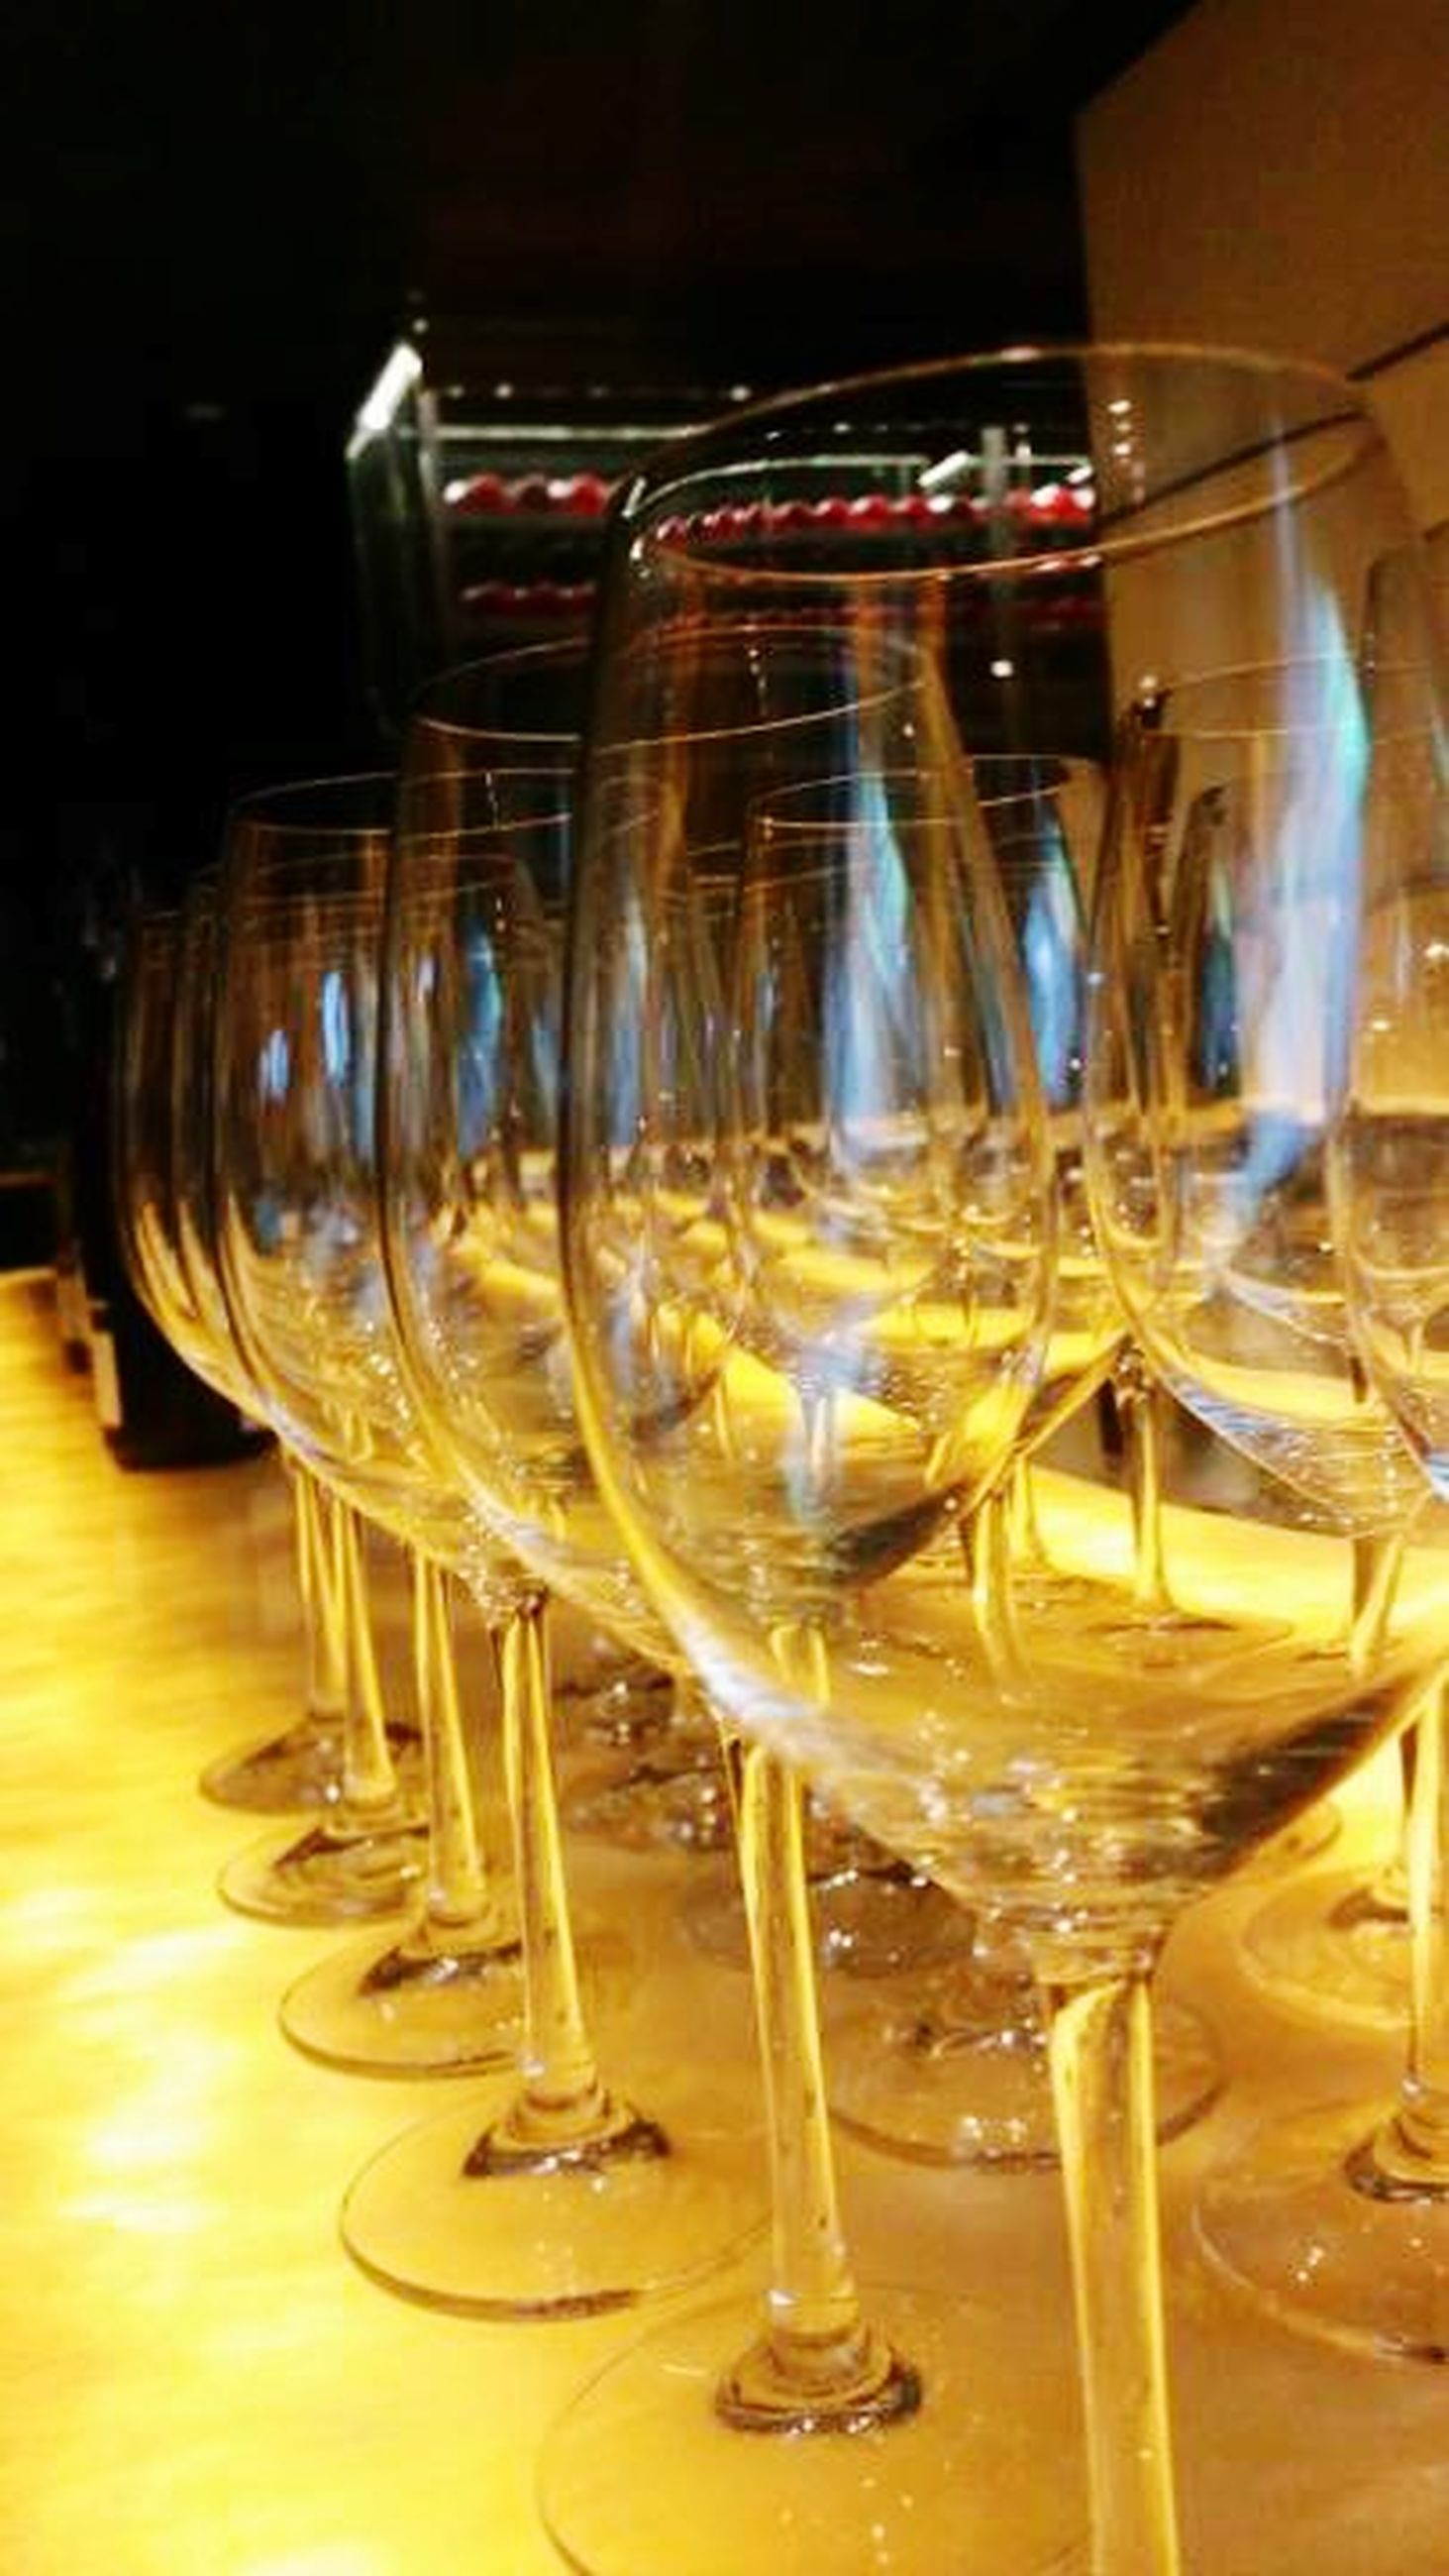 indoors, wineglass, glass - material, drinking glass, transparent, still life, alcohol, close-up, table, wine, drink, refreshment, wine glass, illuminated, food and drink, glass, red wine, bottle, champagne, focus on foreground